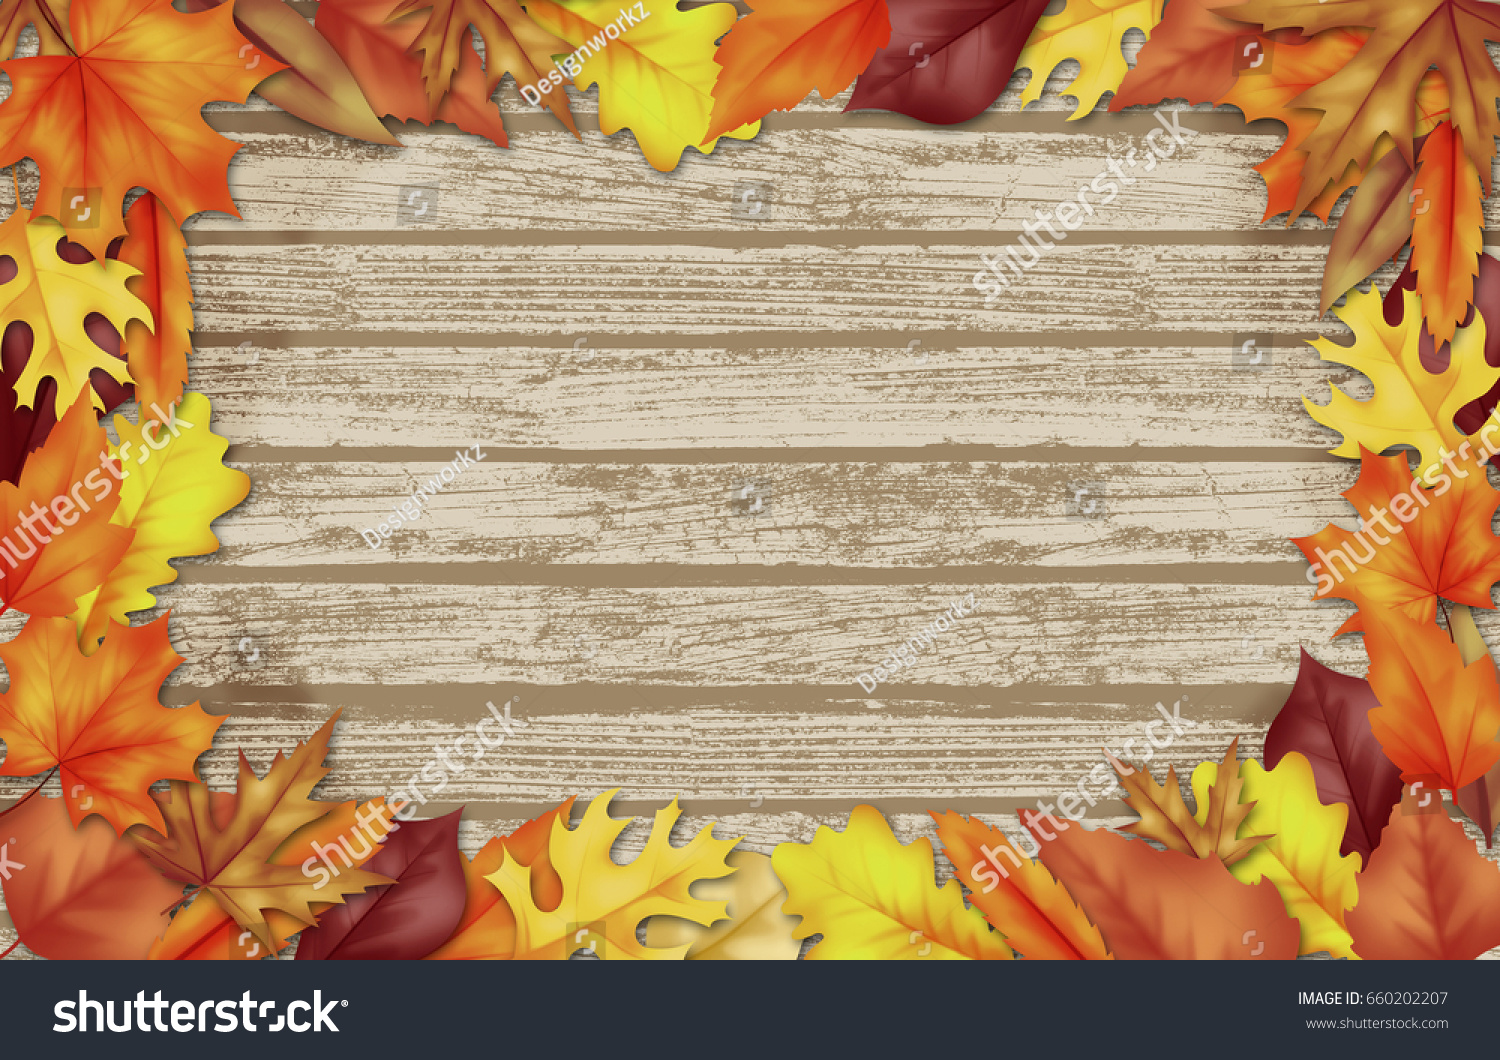 fall autumn background autumn leaves background stock illustration